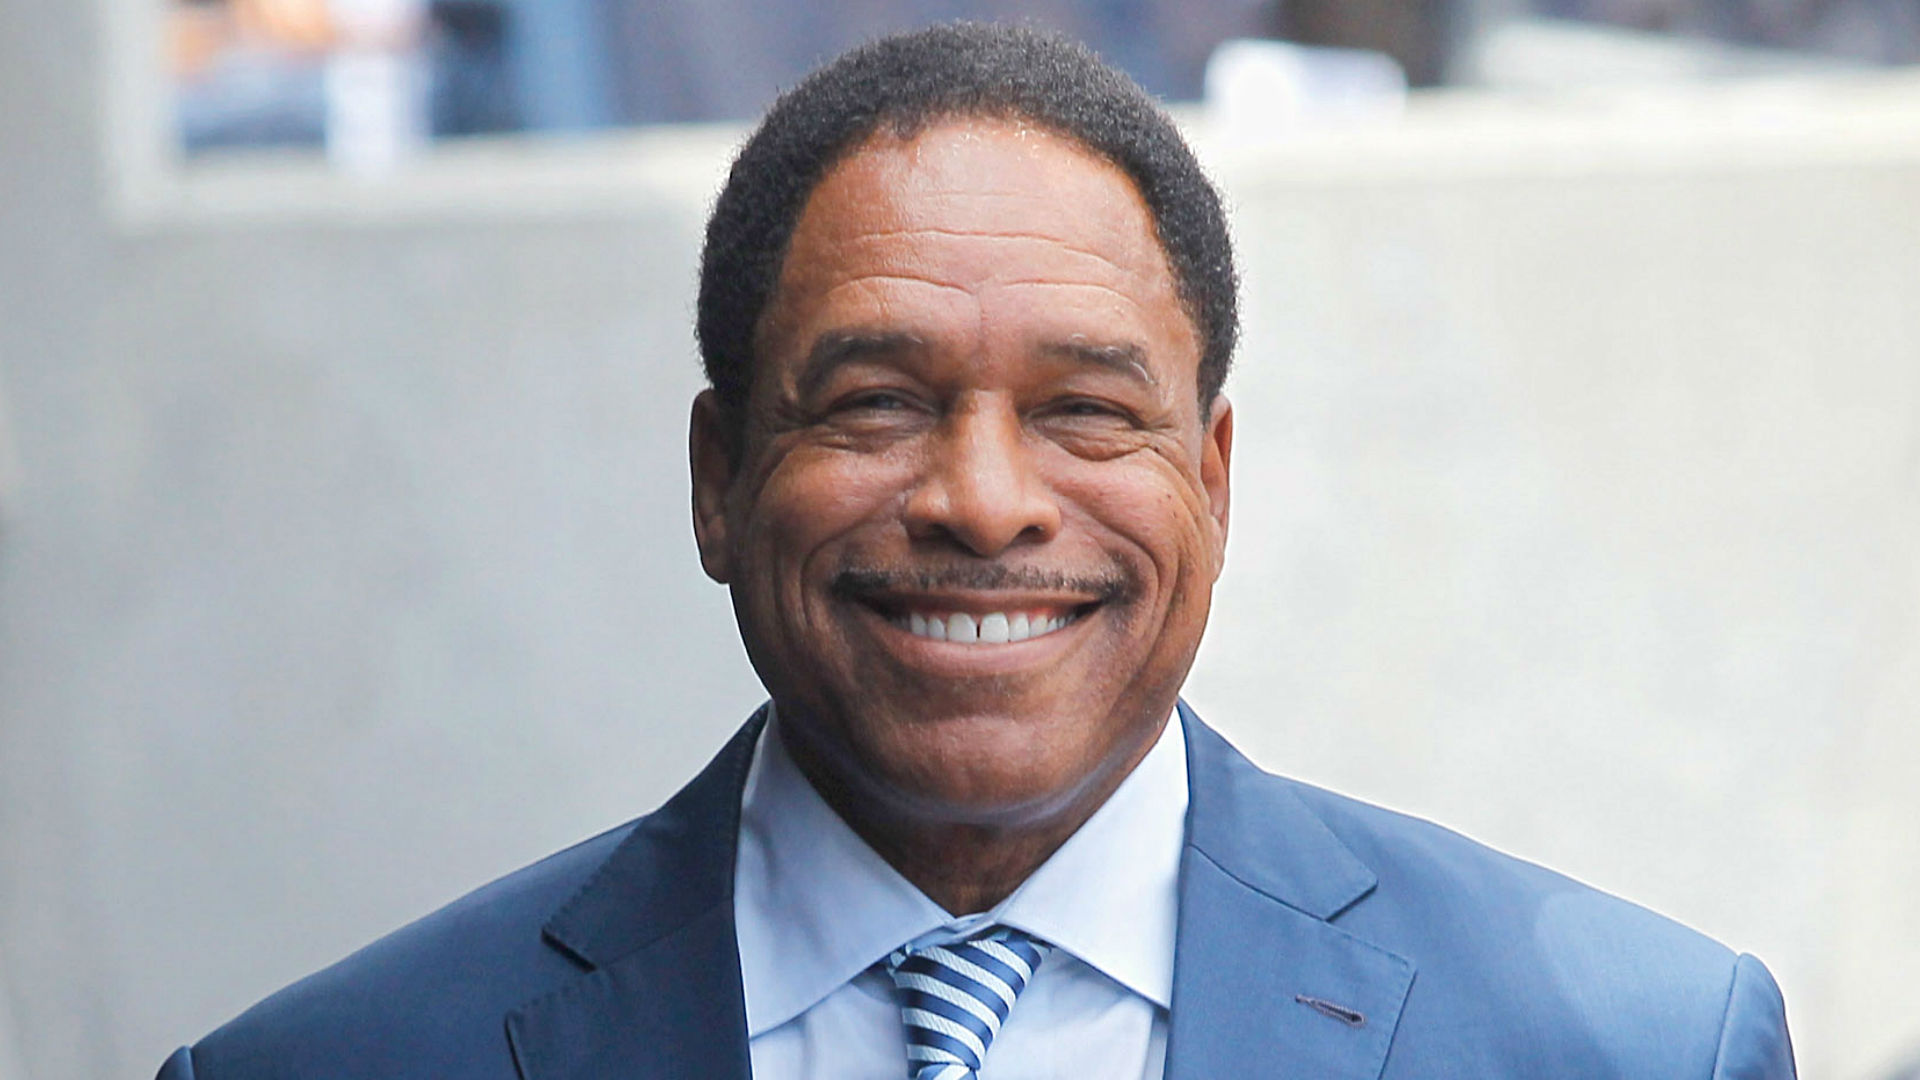 dave-winfield-ftr-getty-052915